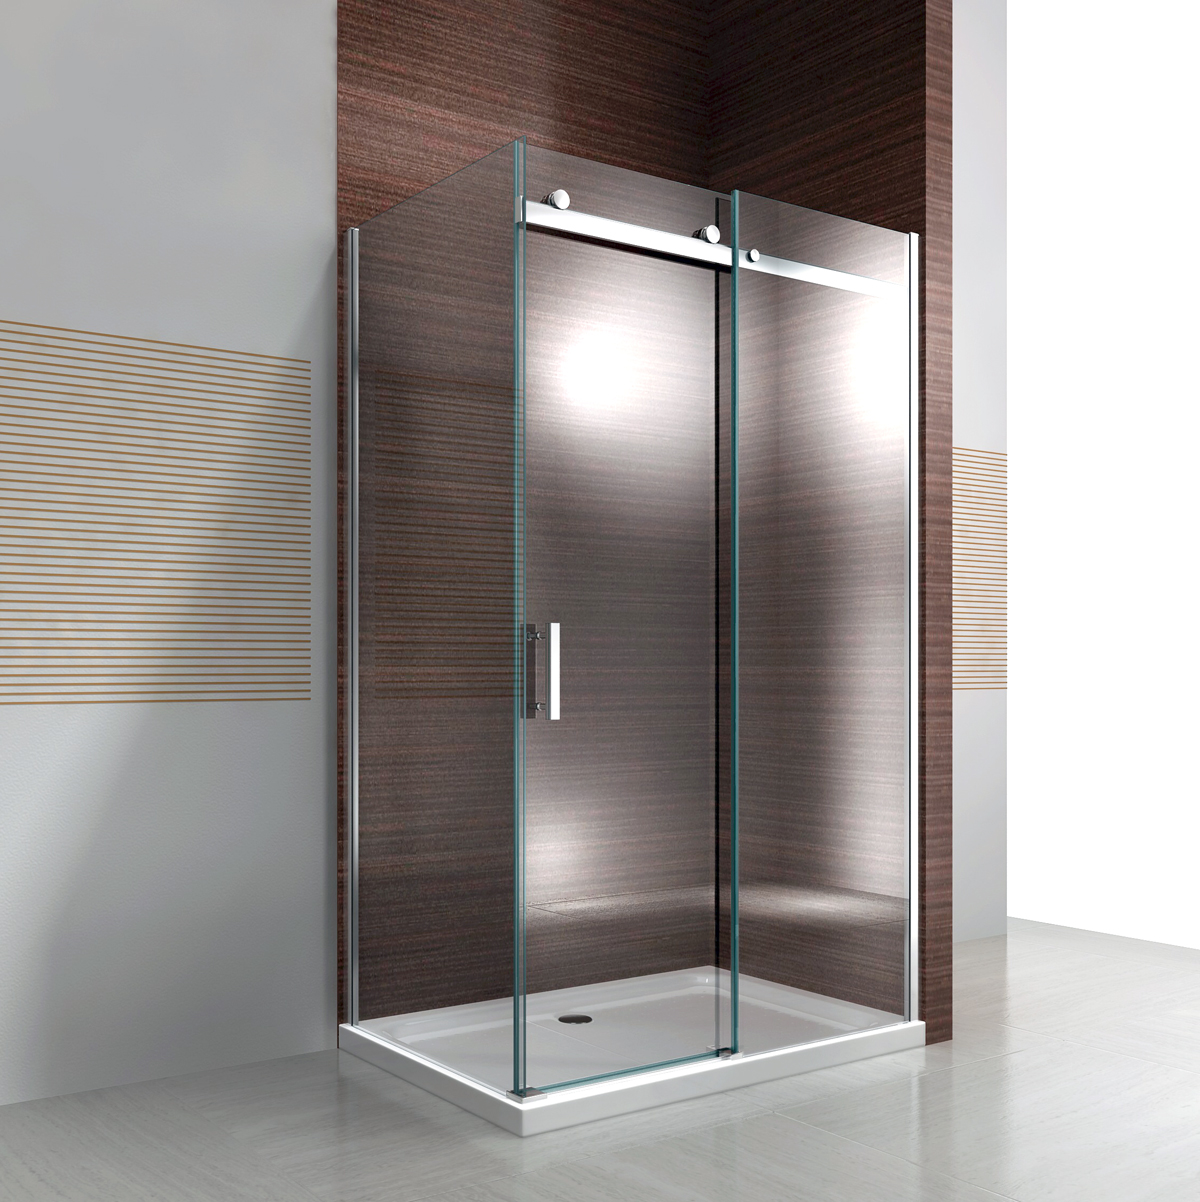 cabine de douche cloison de douche porte coulissante nano esg verre v ritable ebay. Black Bedroom Furniture Sets. Home Design Ideas